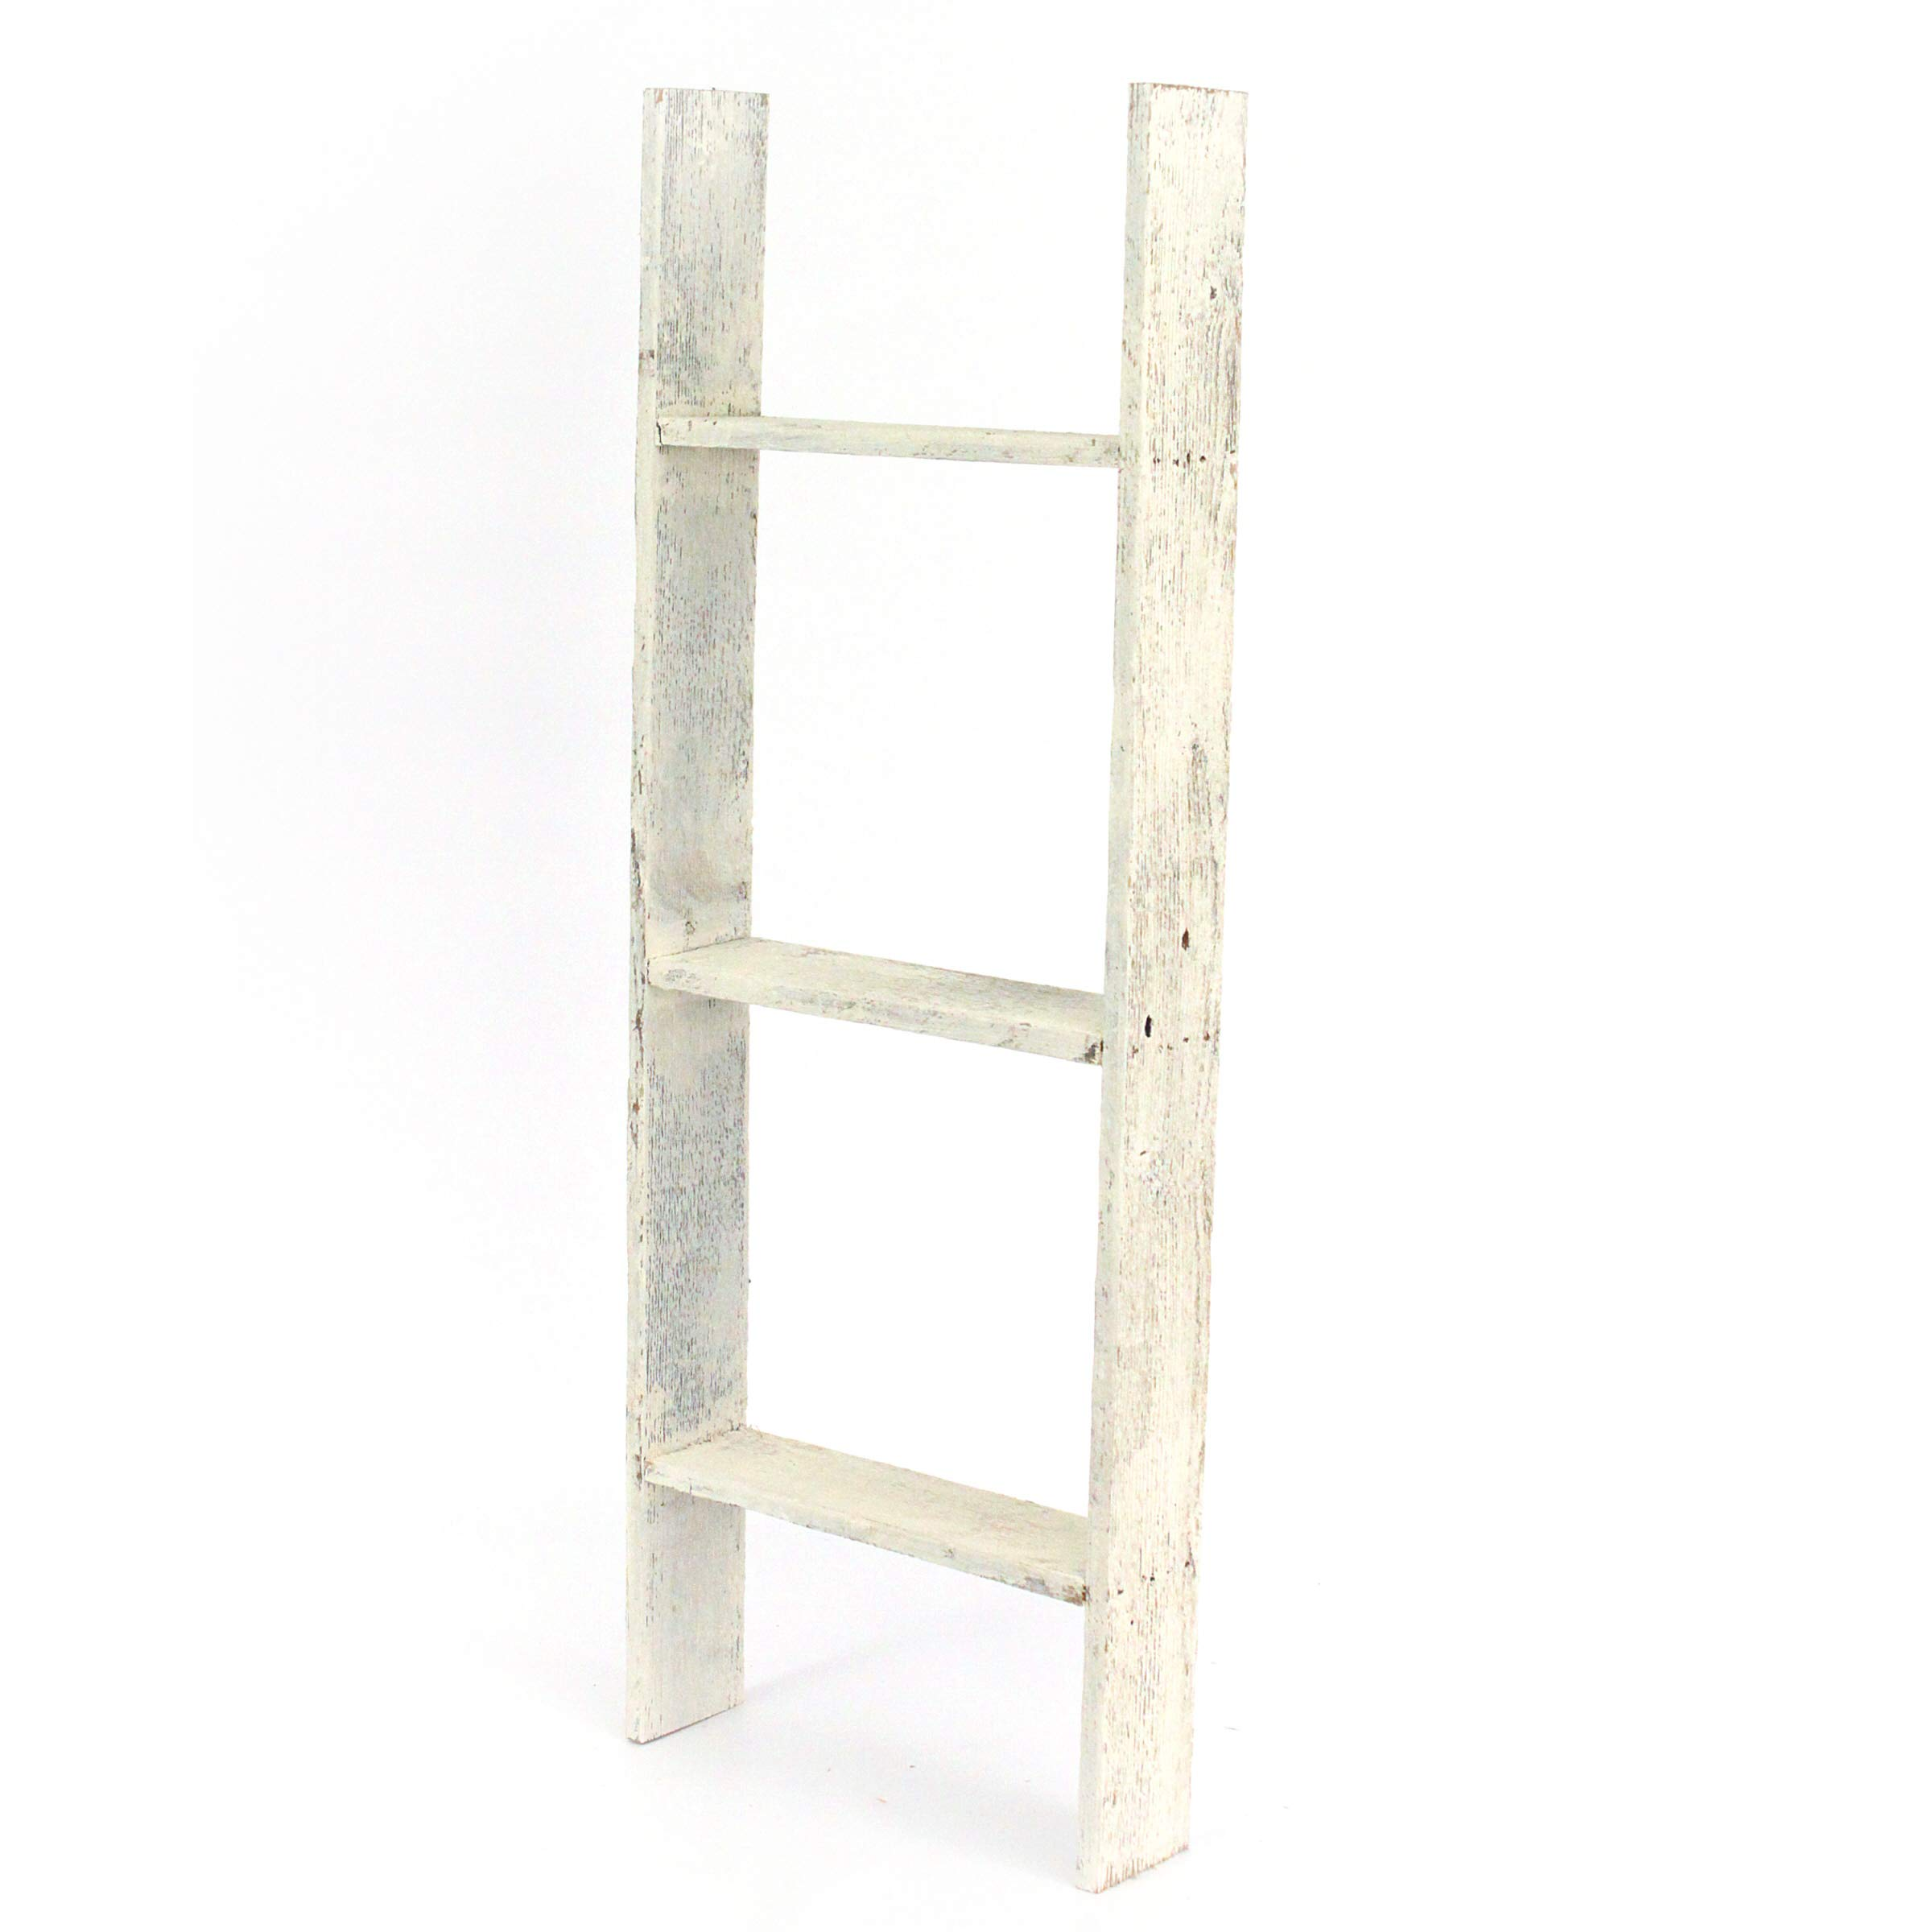 BarnwoodUSA Rustic Farmhouse Blanket Ladder - Our 3 ft Ladder can be Mounted Horizontally Vertically is Crafted from 100% Recycled Reclaimed Wood | No Assembly Required | White